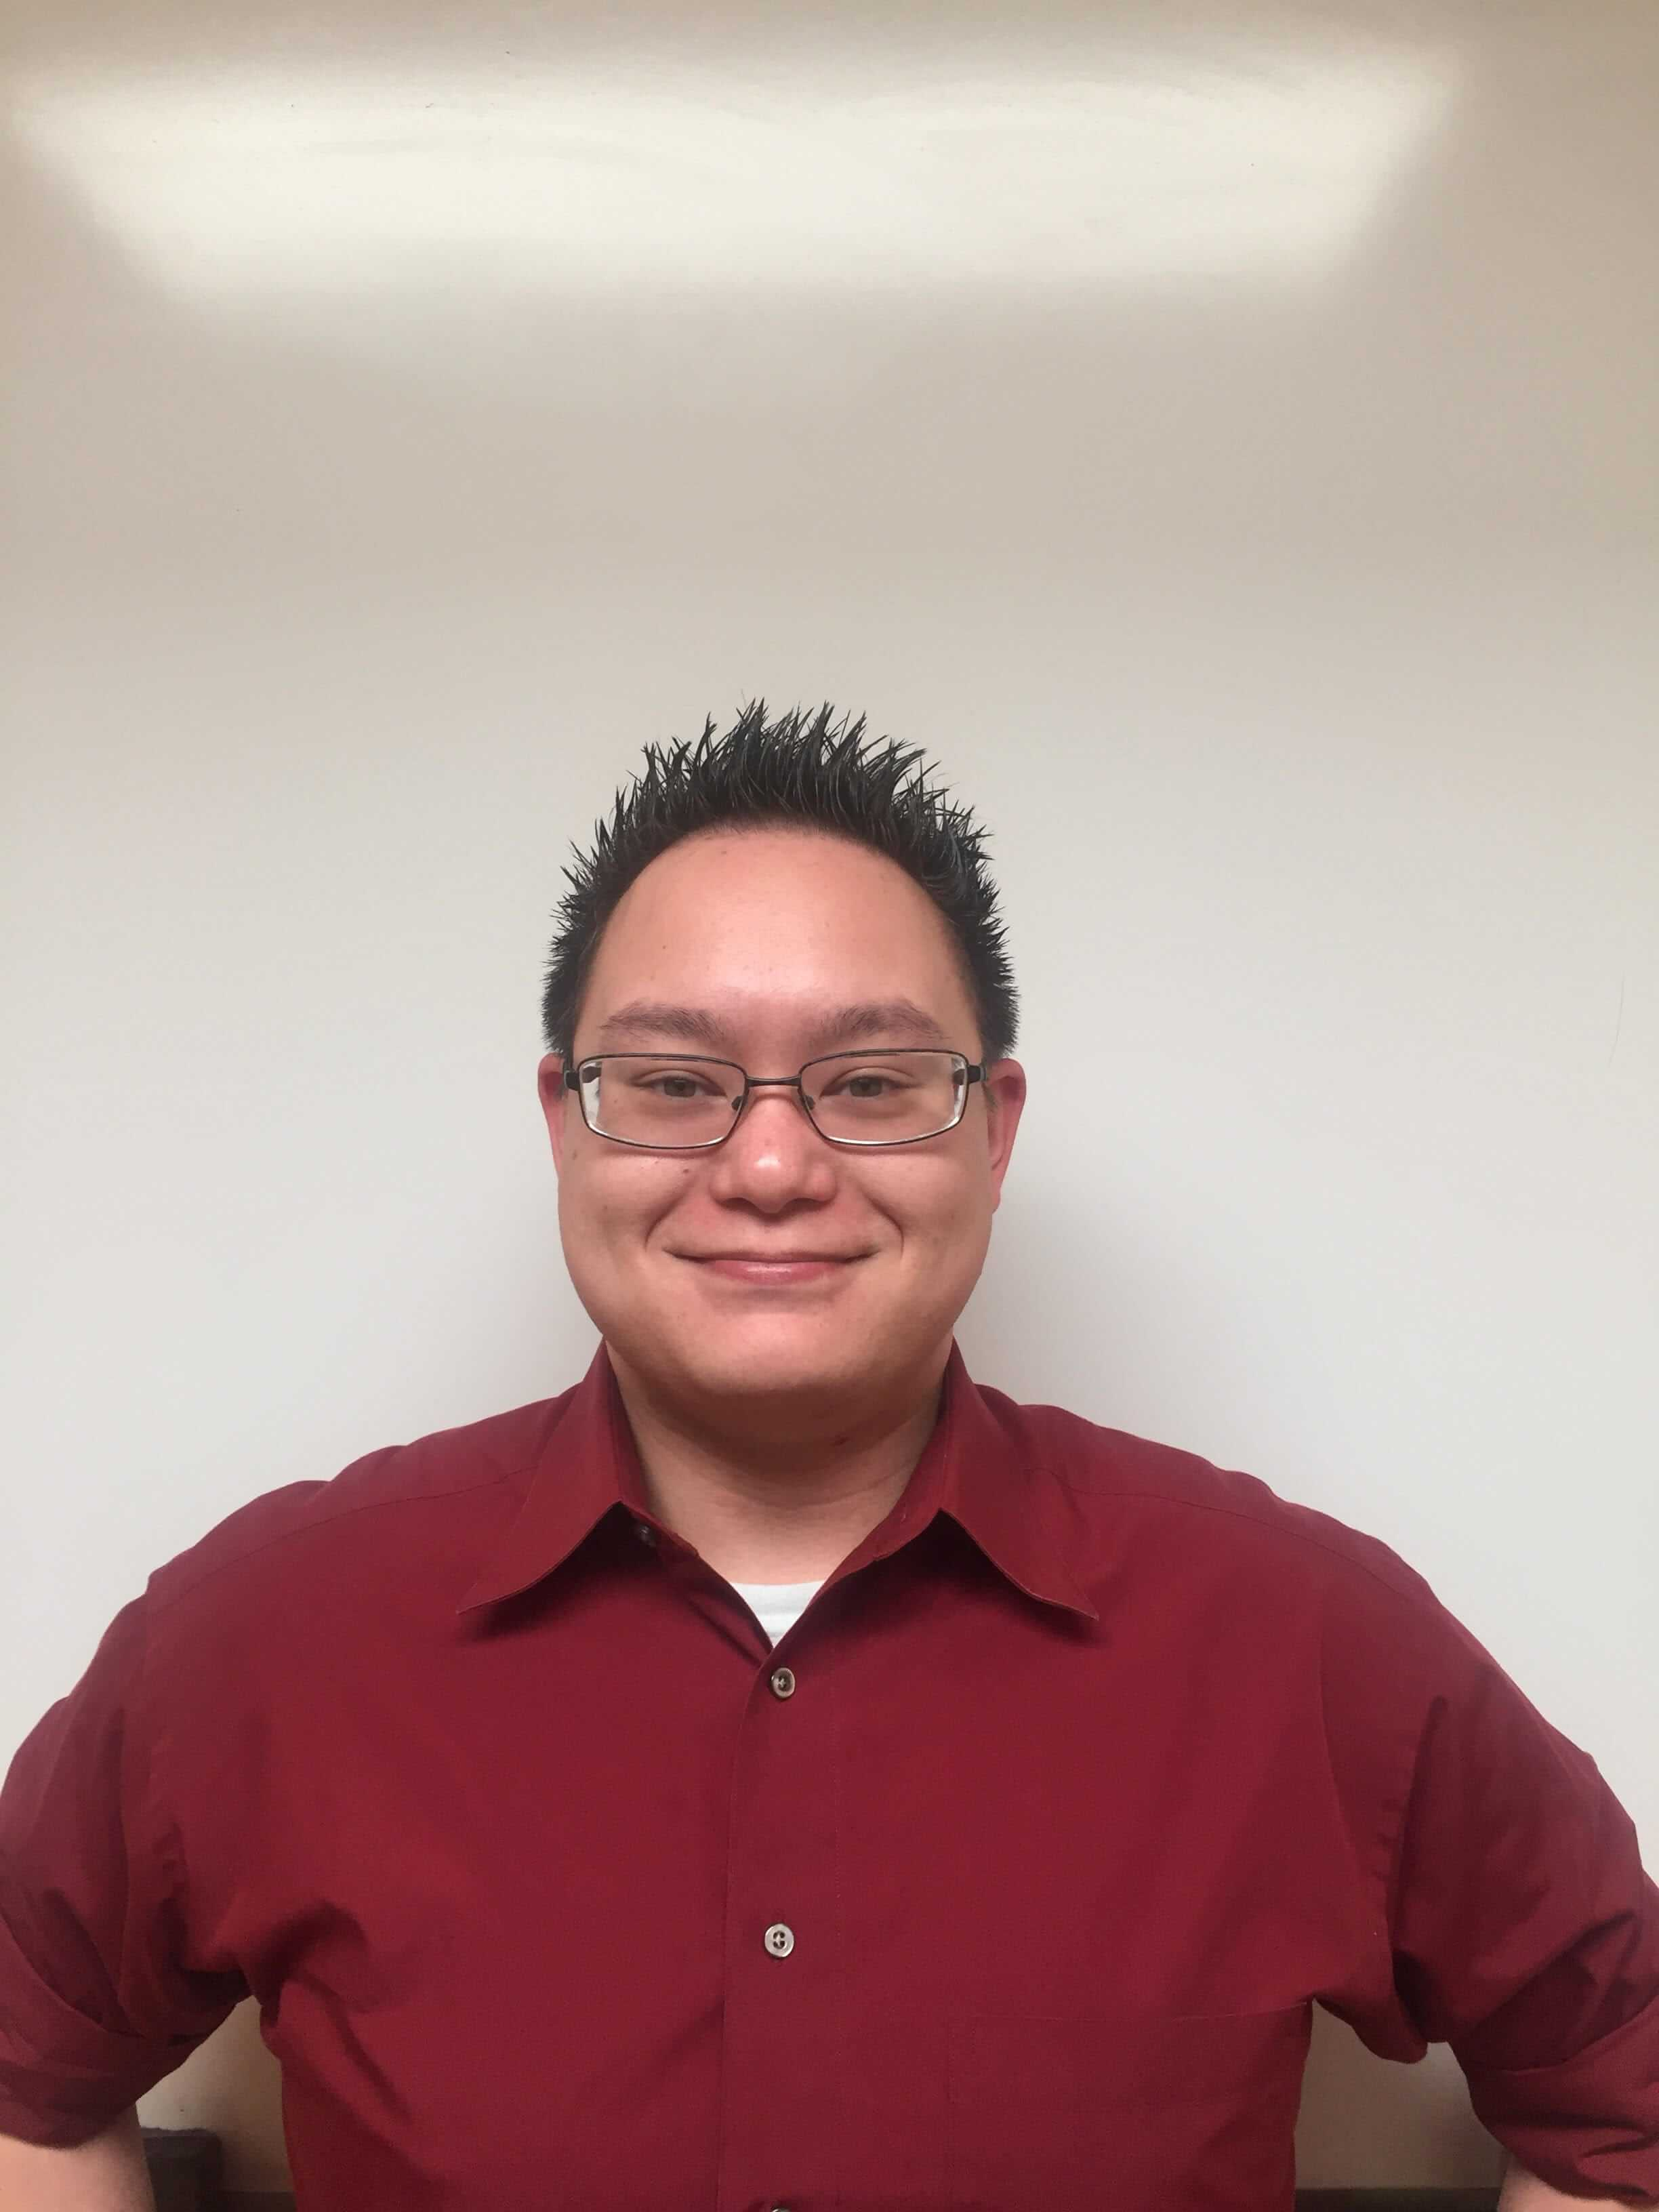 Joseph Chow – Joint Commission Compliance Specialist